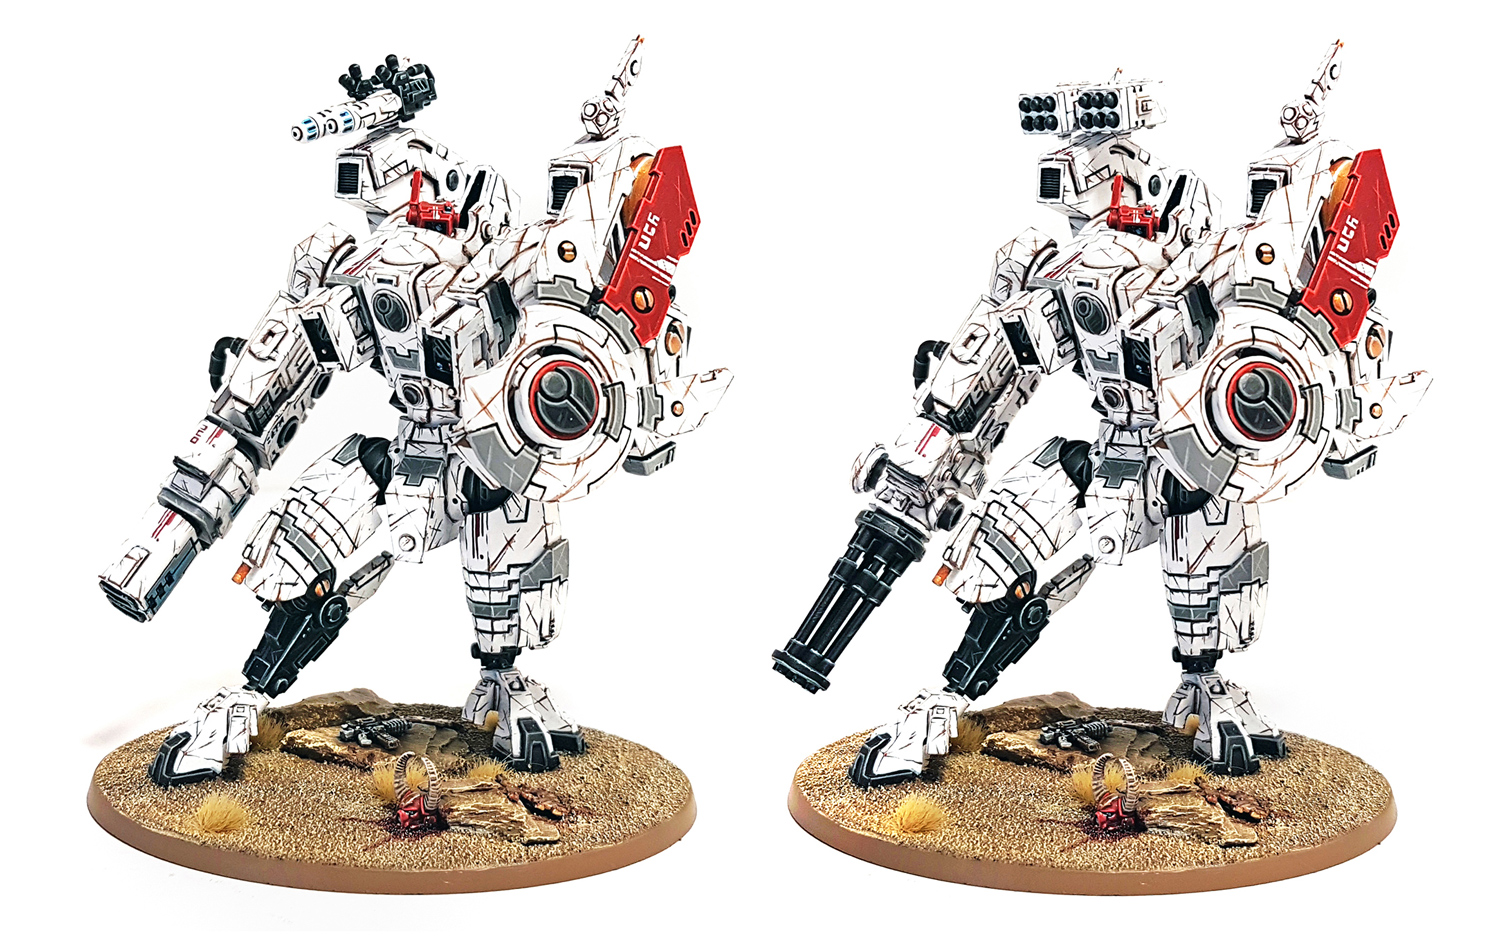 Deathhammer40k Warhammer 40,000 Farsight Enclave and Tau Project Riptide Weapon Options Blog Post